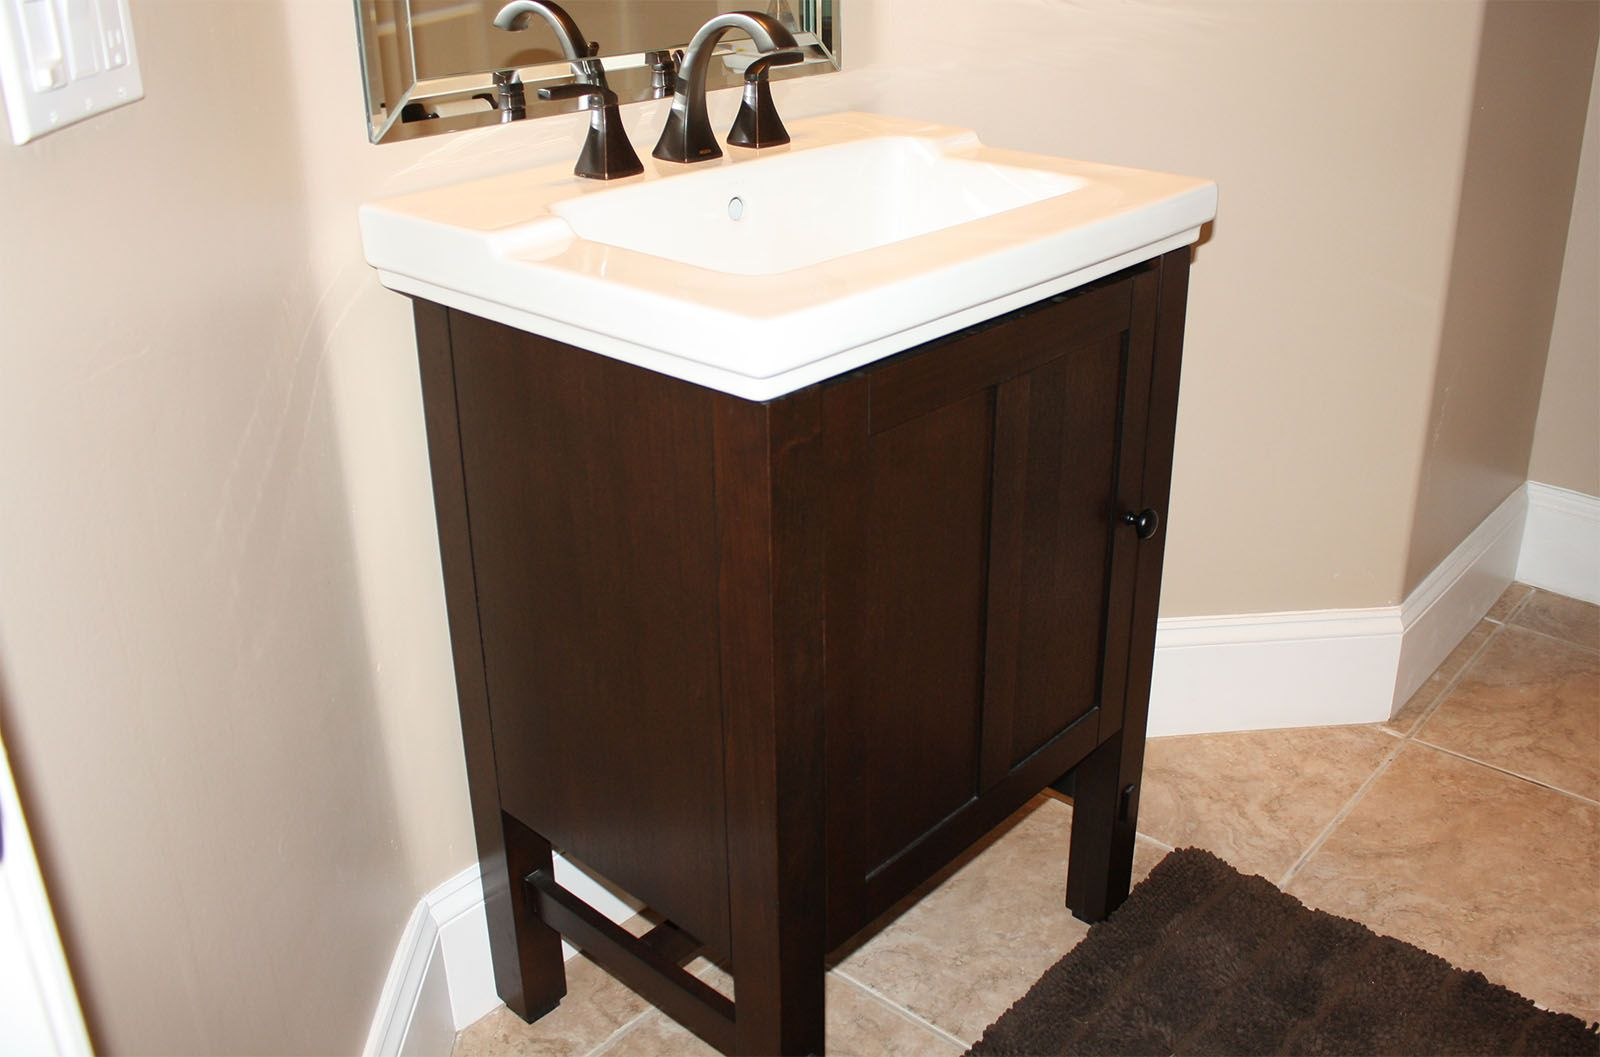 A review of the Kohler Tresham Vanity and compatible sink tops ...